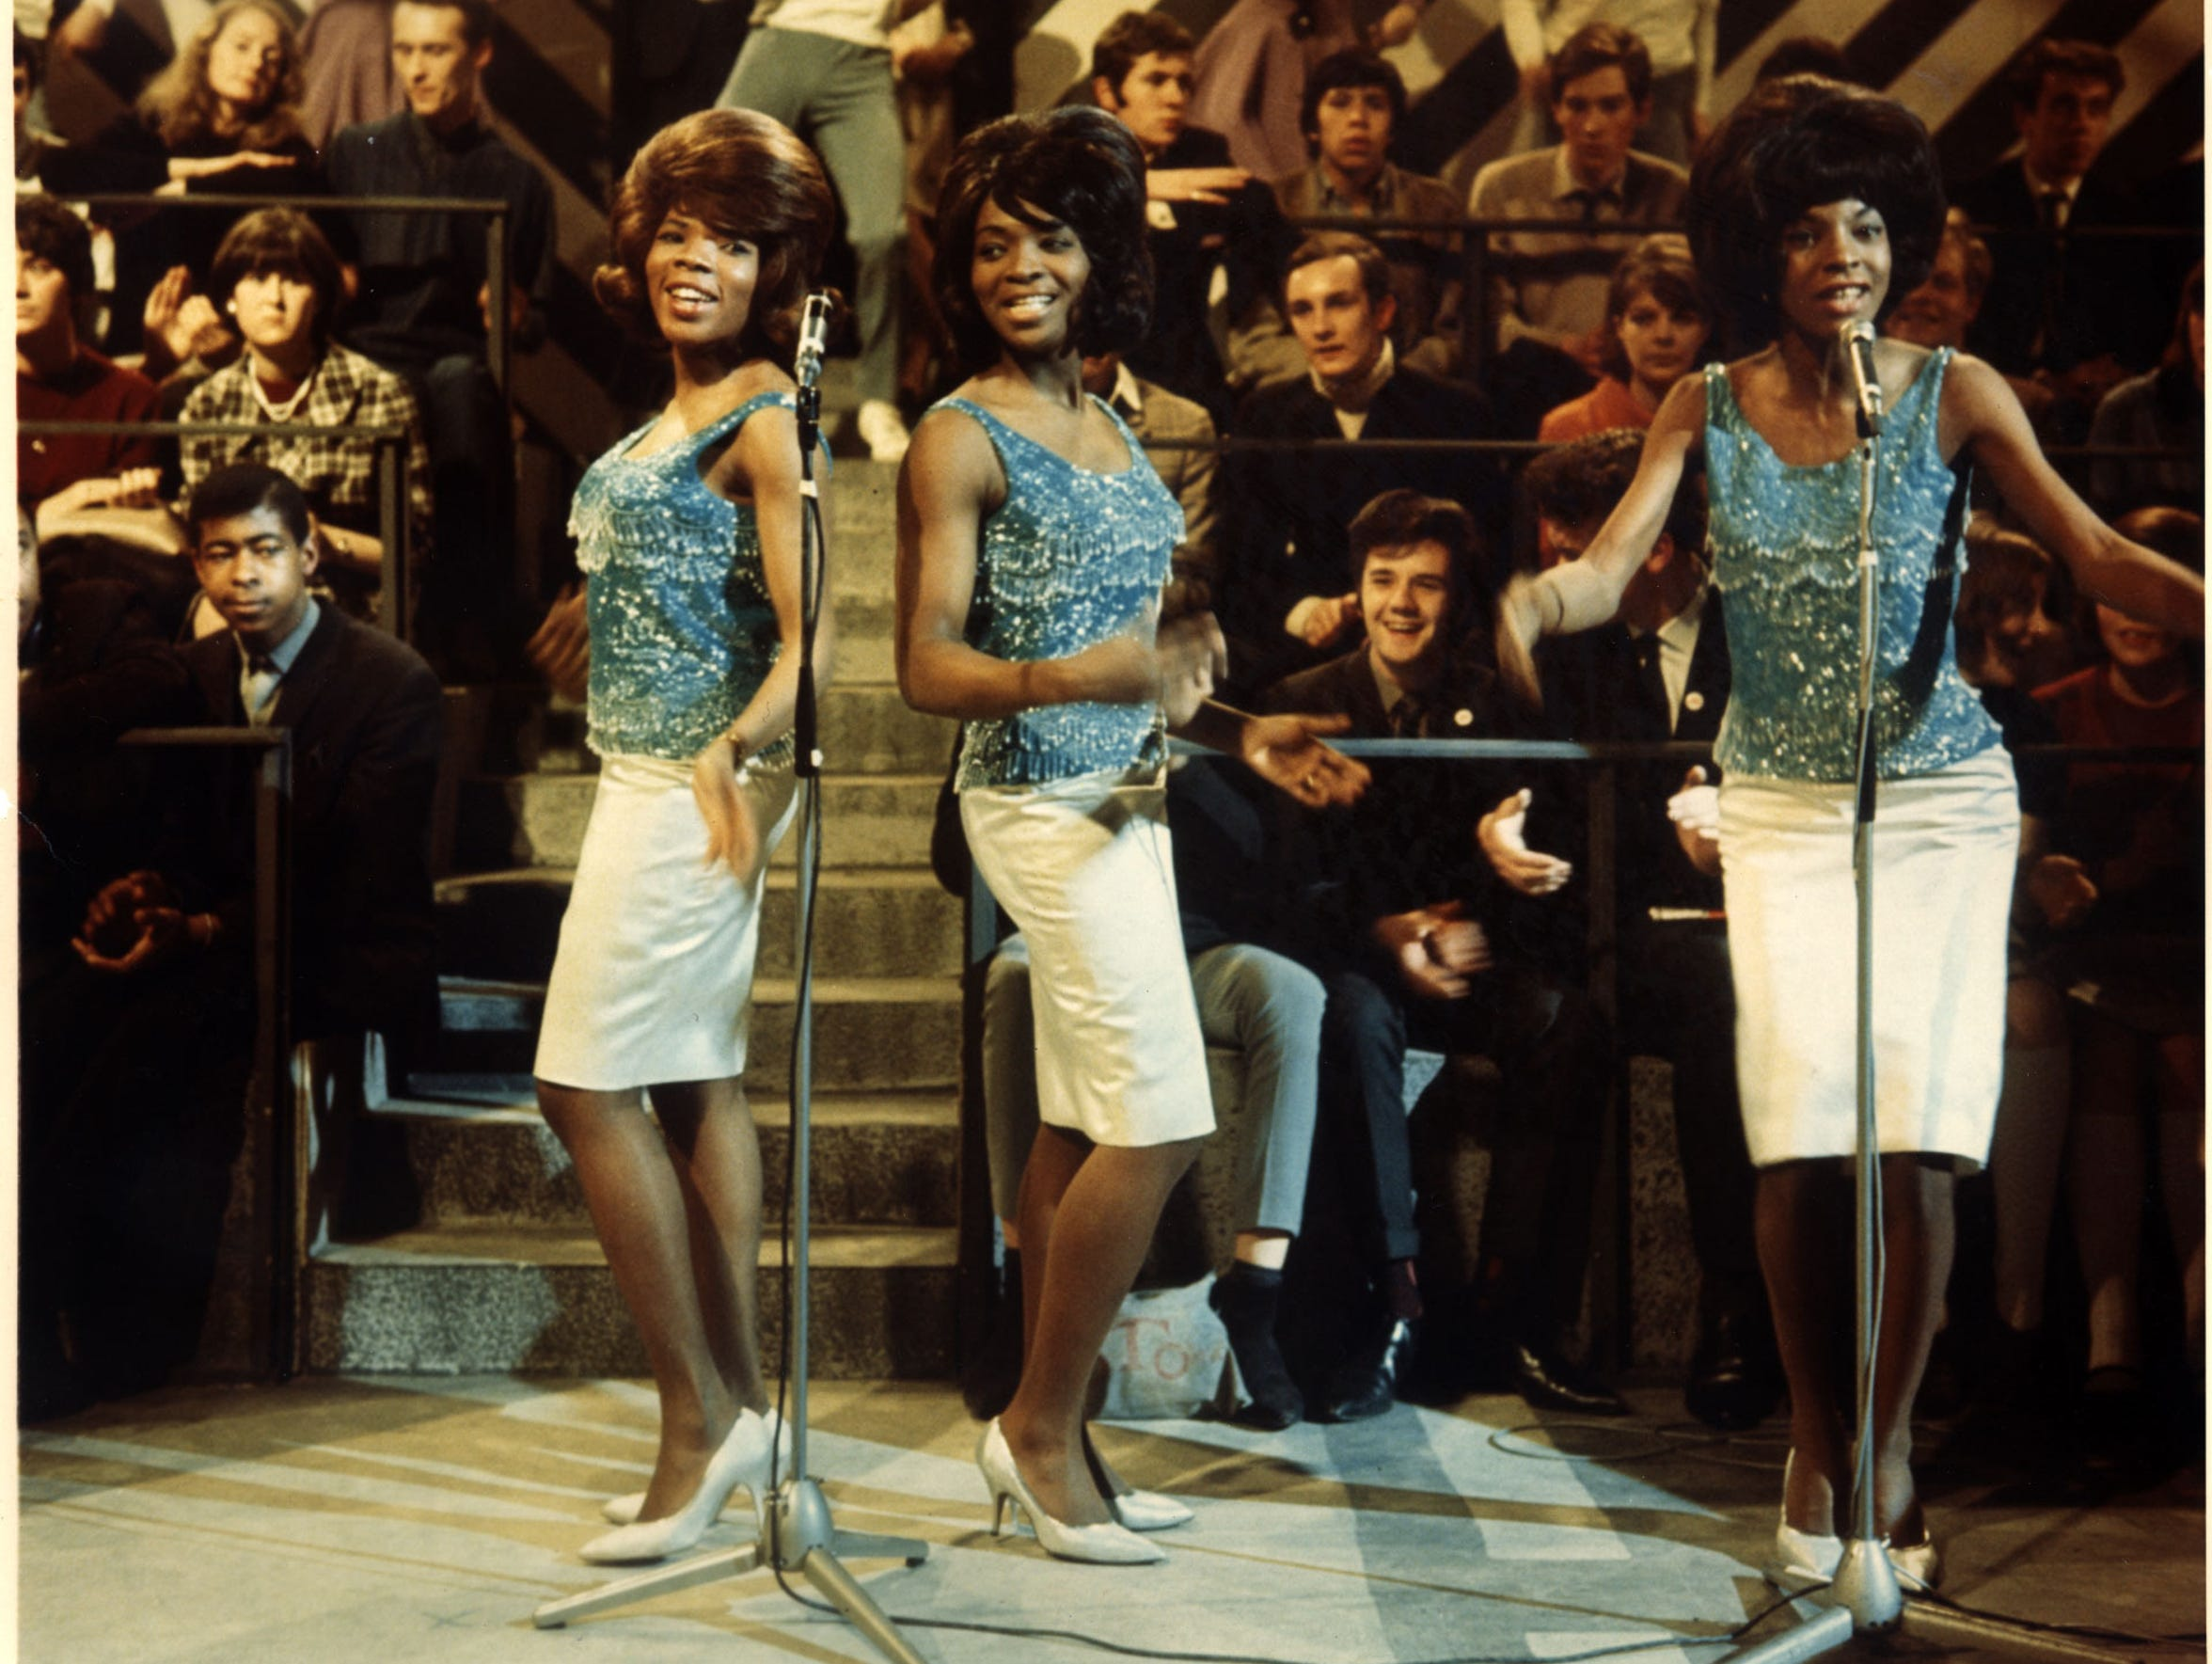 Martha Reeves (right) and the Vandellas during a 1965